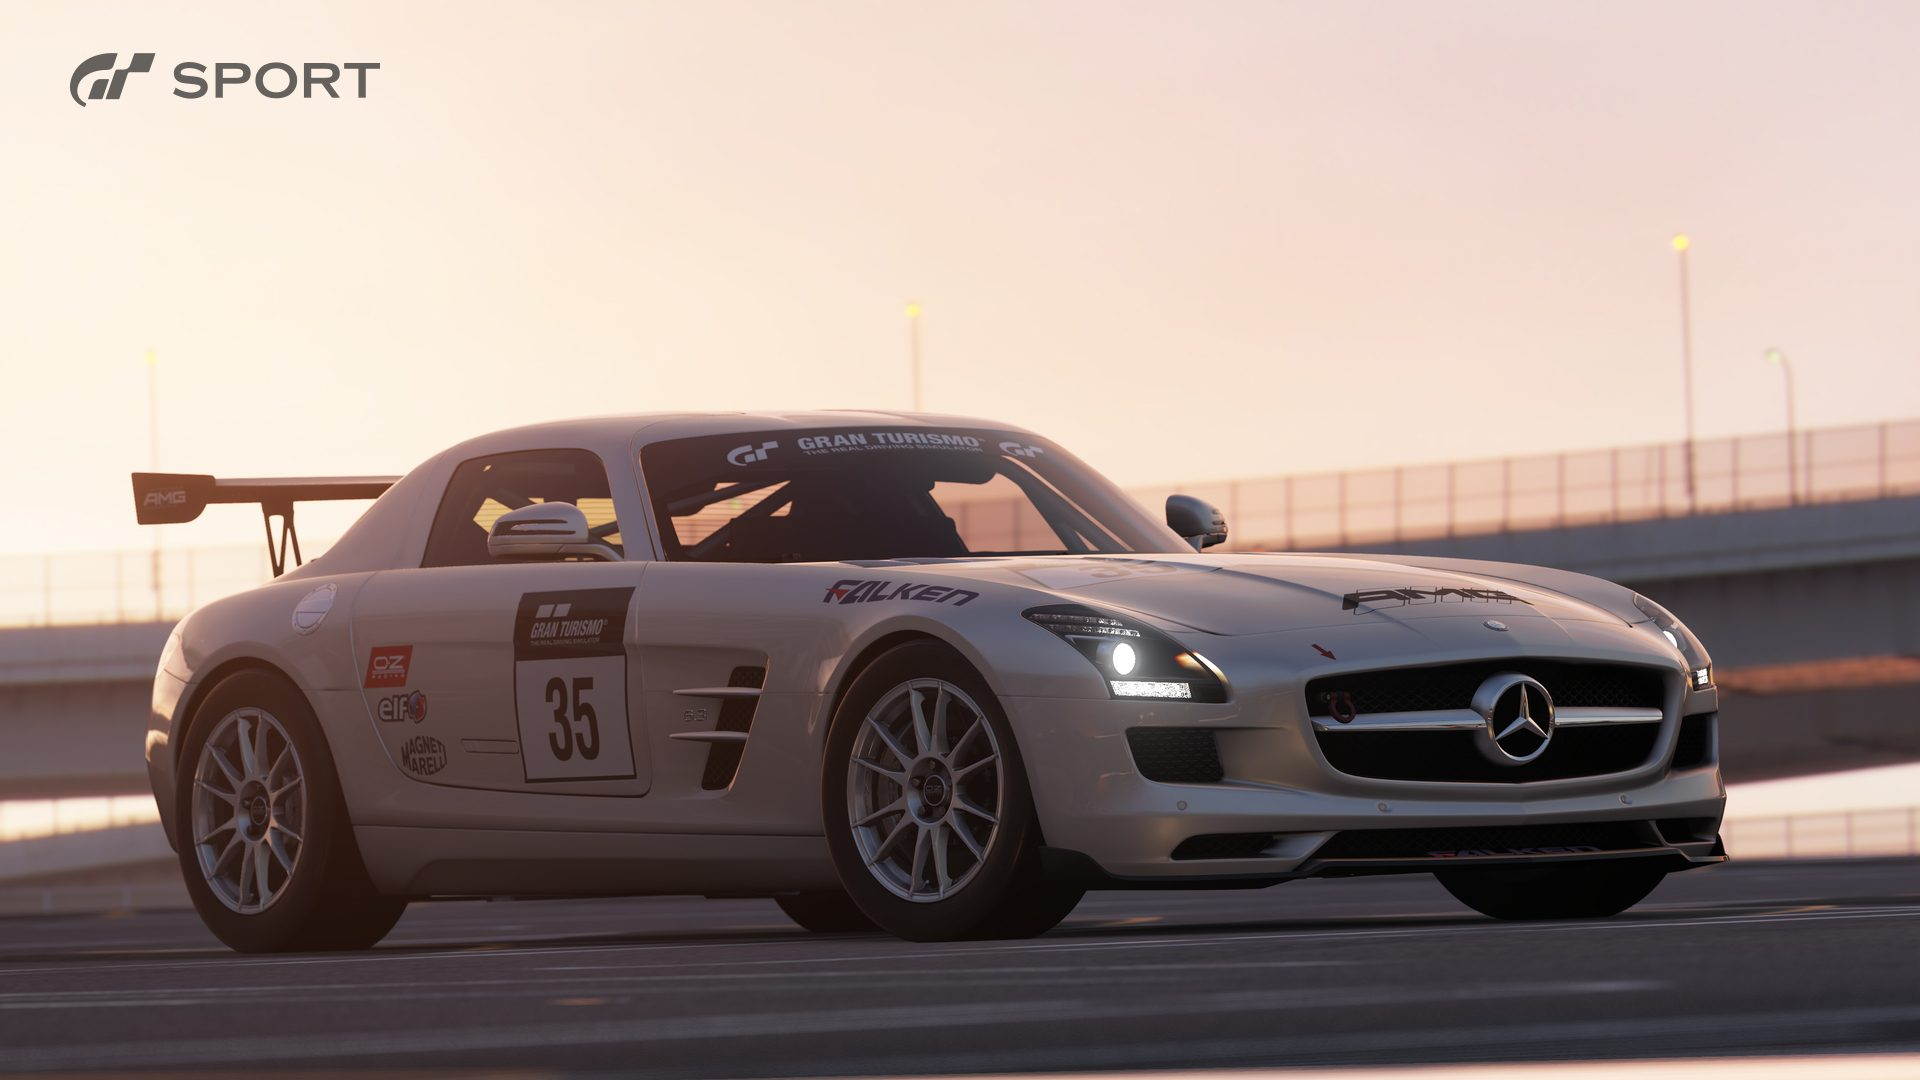 78 new gt sport images say hello to the m6 gt3. Black Bedroom Furniture Sets. Home Design Ideas